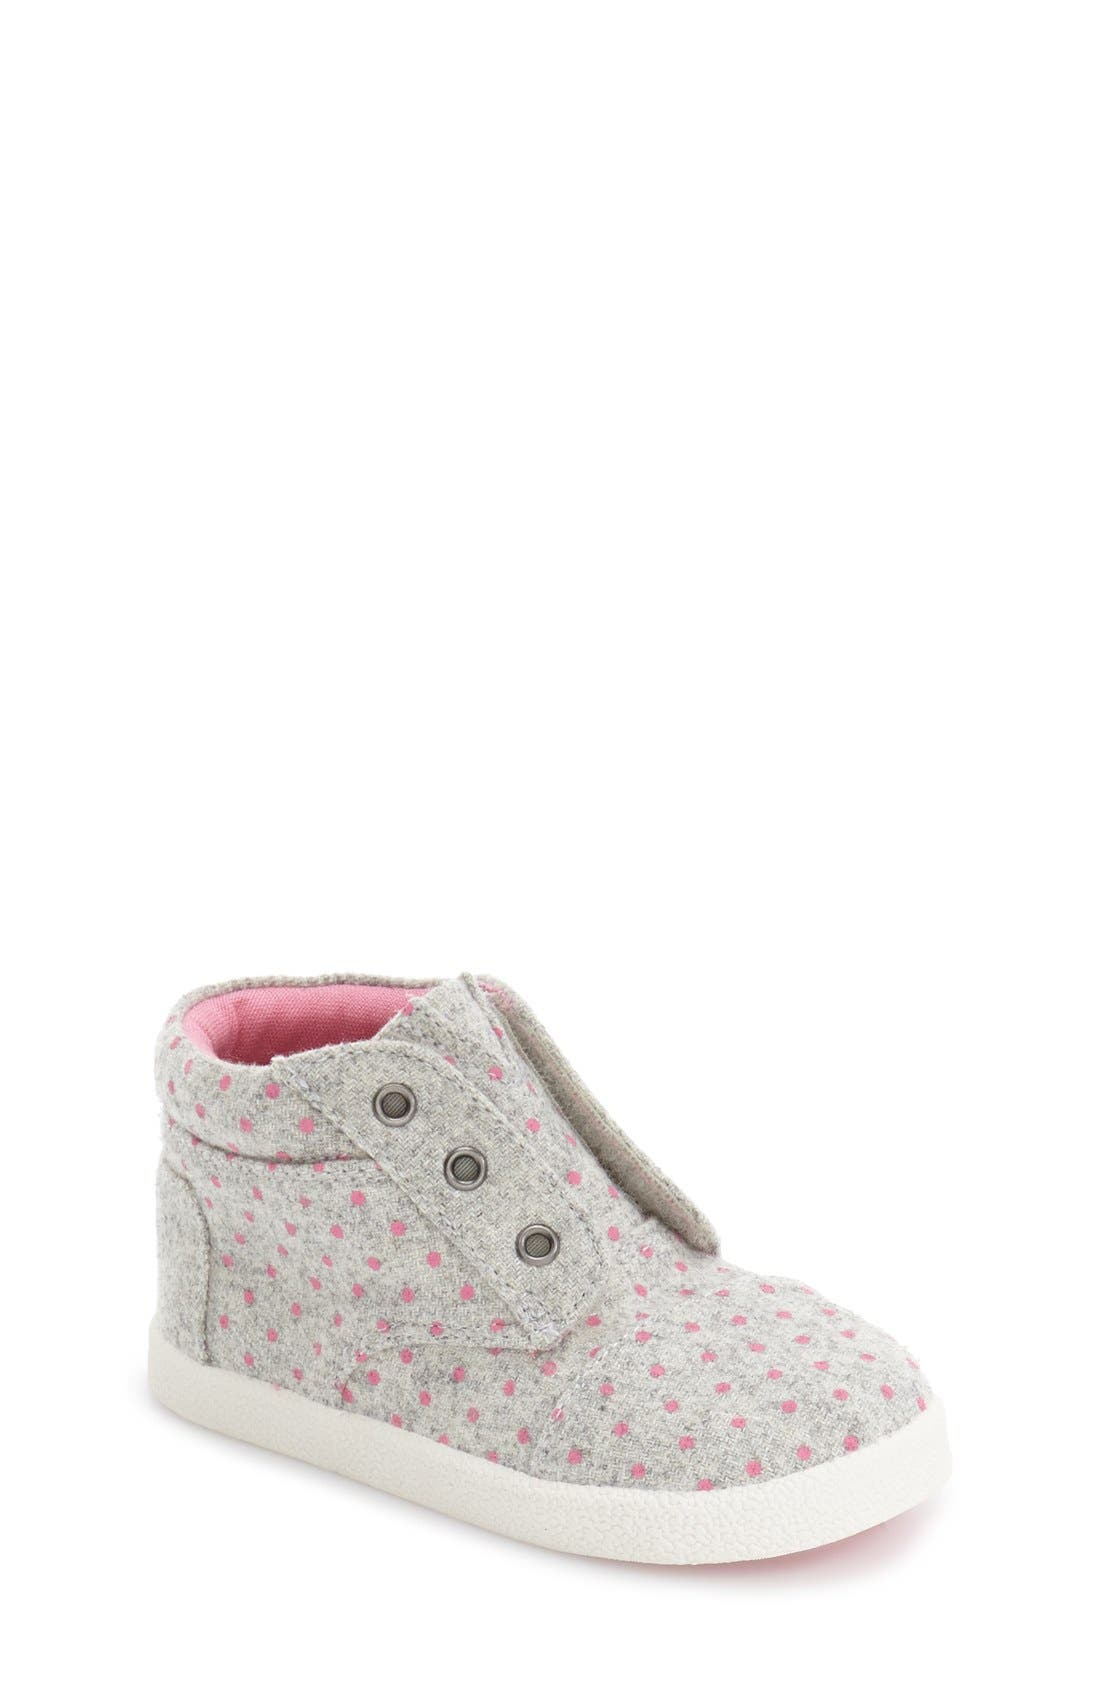 Alternate Image 1 Selected - TOMS 'Paseo' High Top Sneaker (Baby, Walker & Toddler)